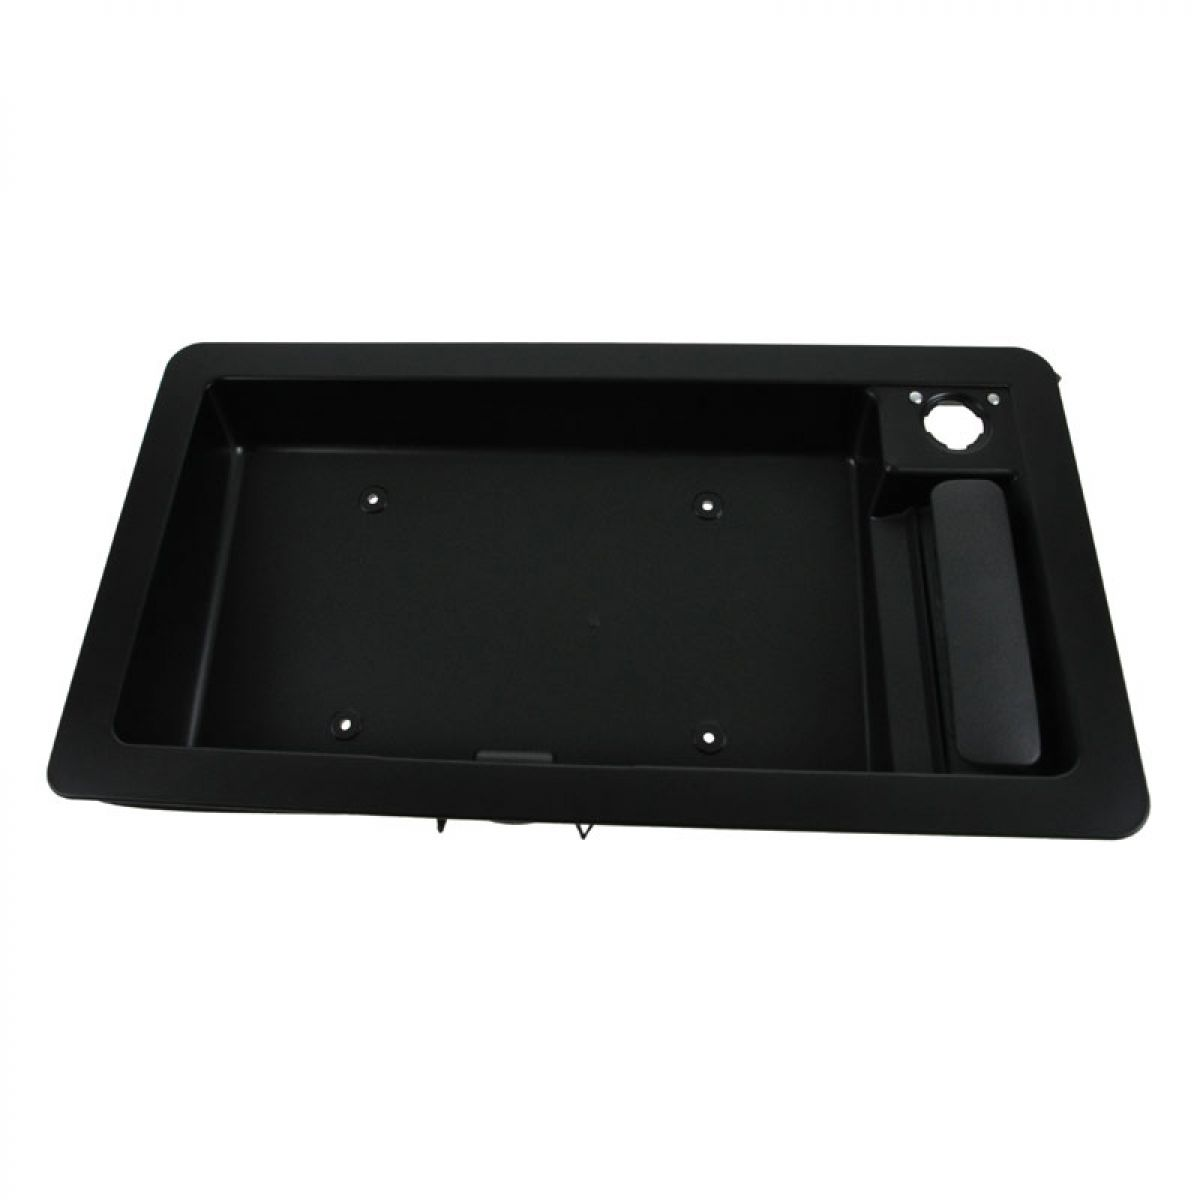 Ford E-150 Rear Door License Plate Housing